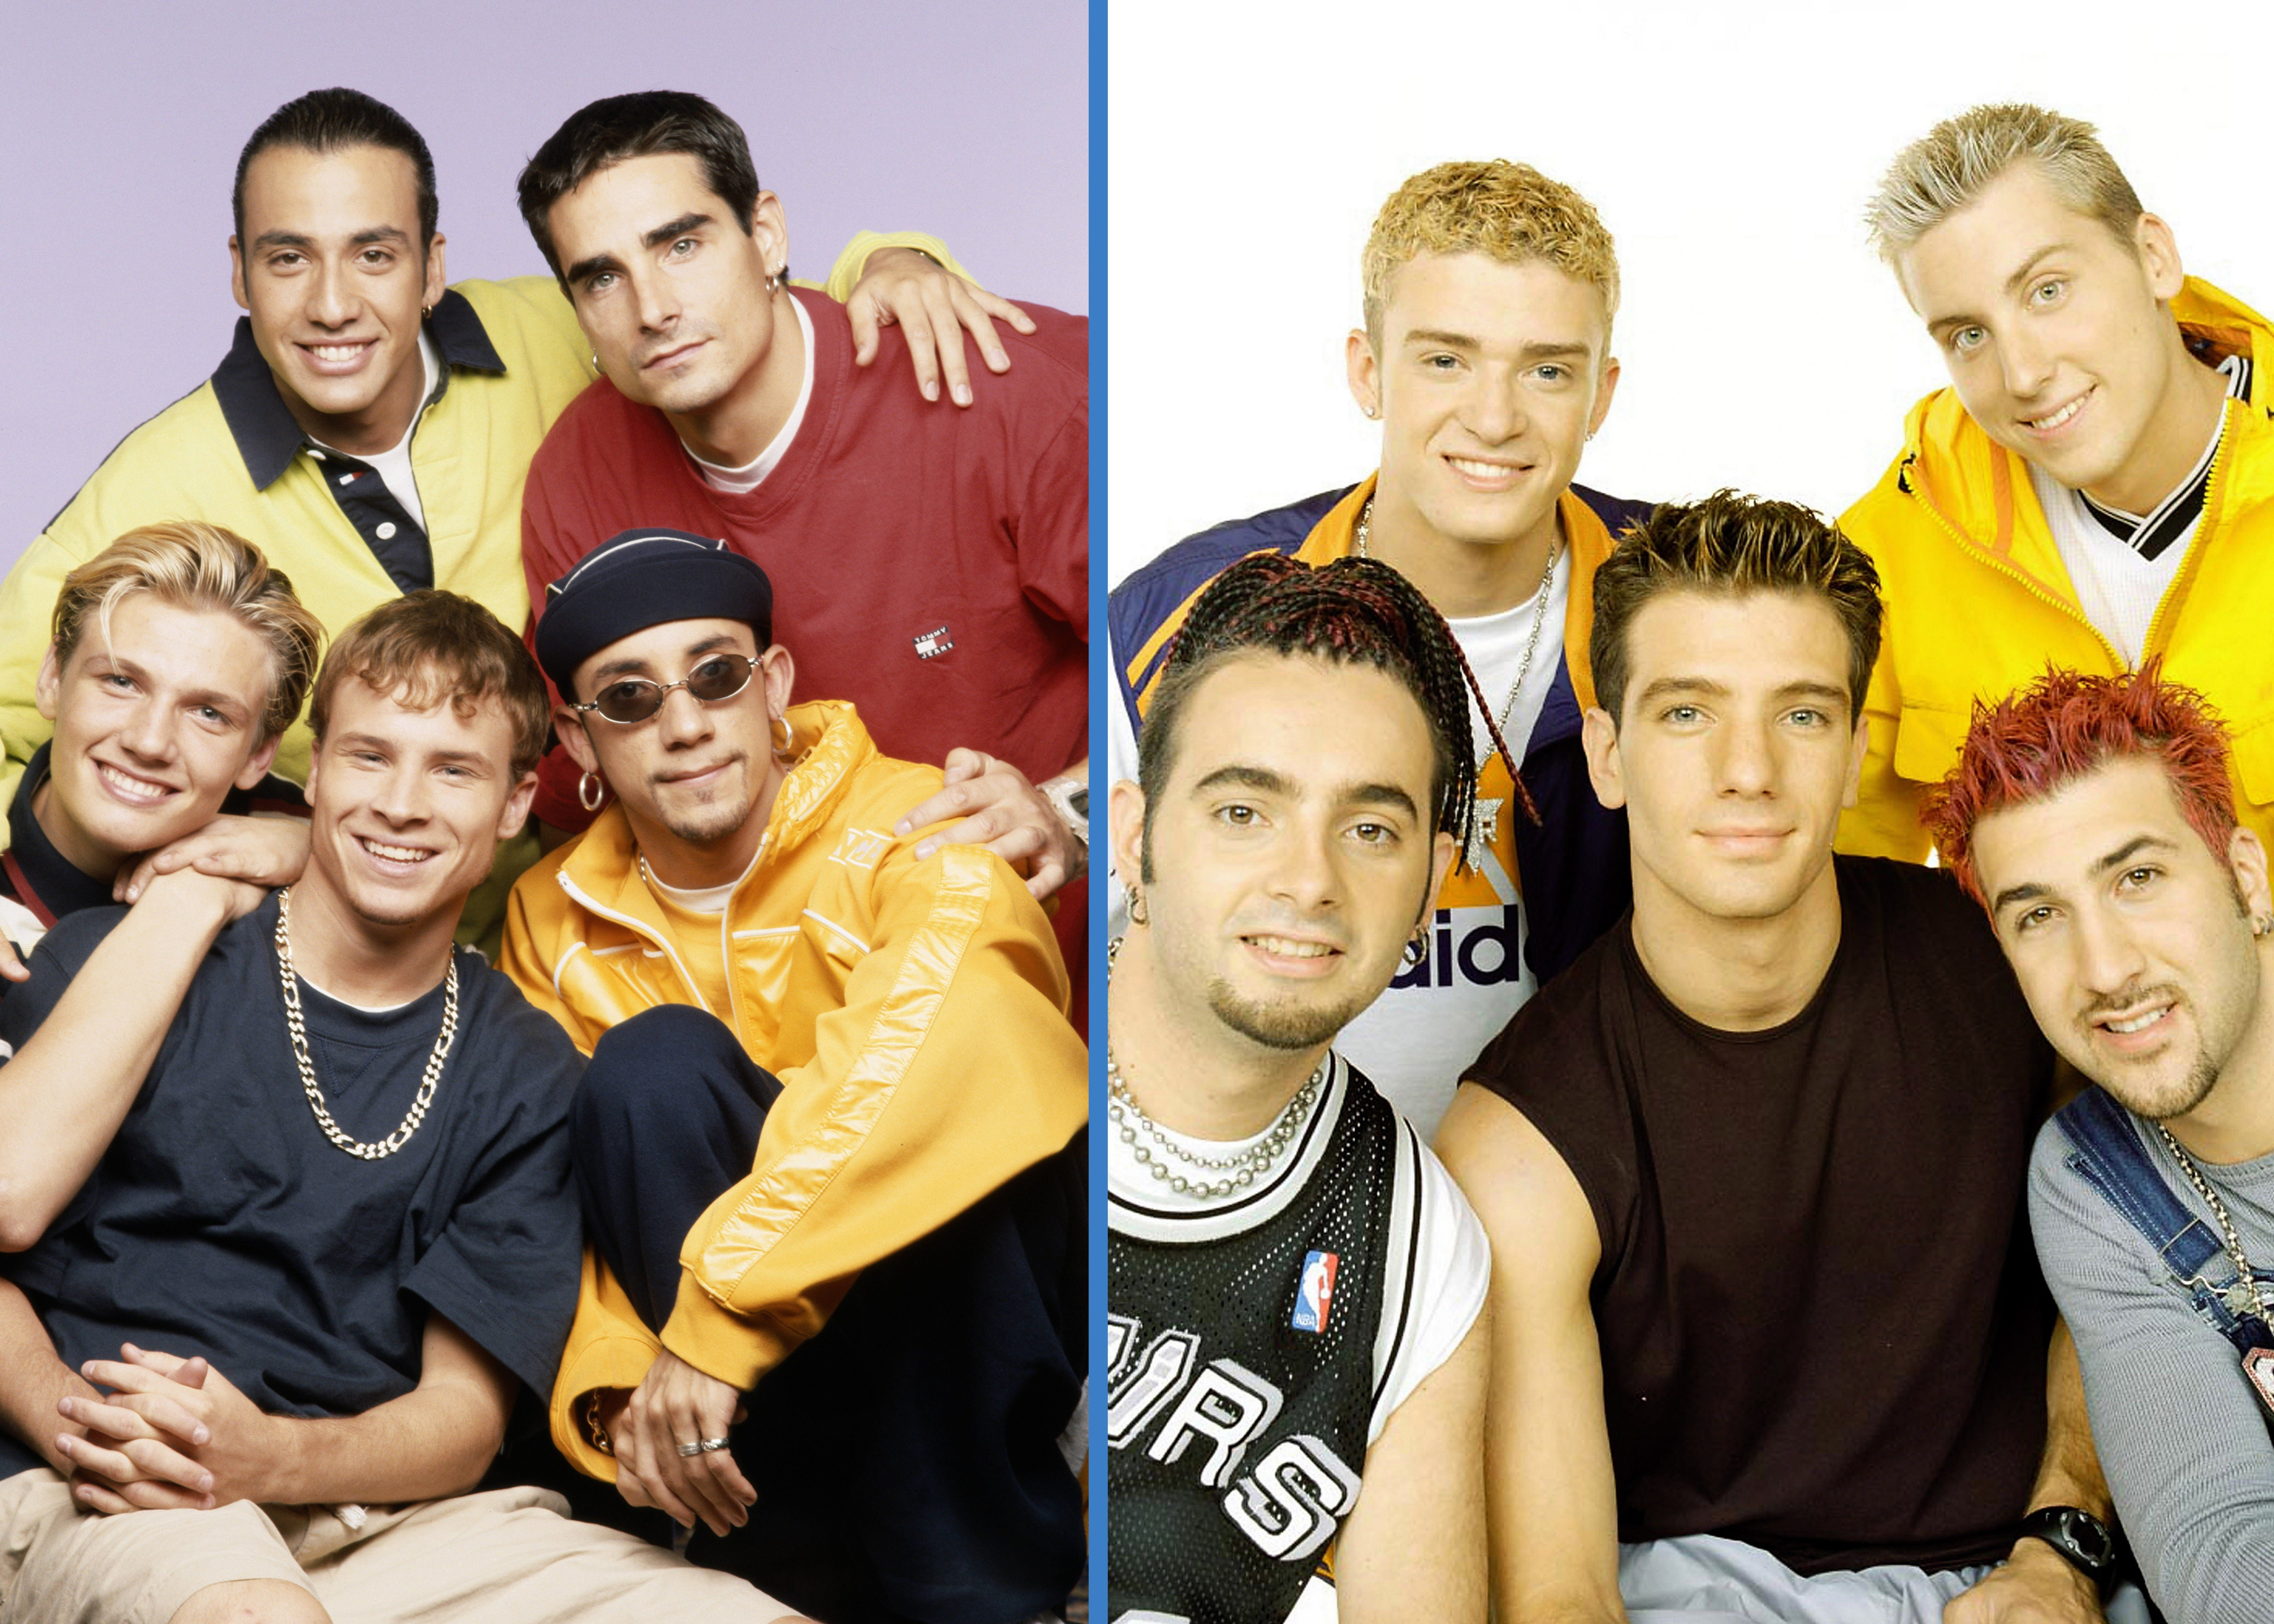 Honestly, These 7 NSYNC and Backstreet Boys Songs Should Be Played ...